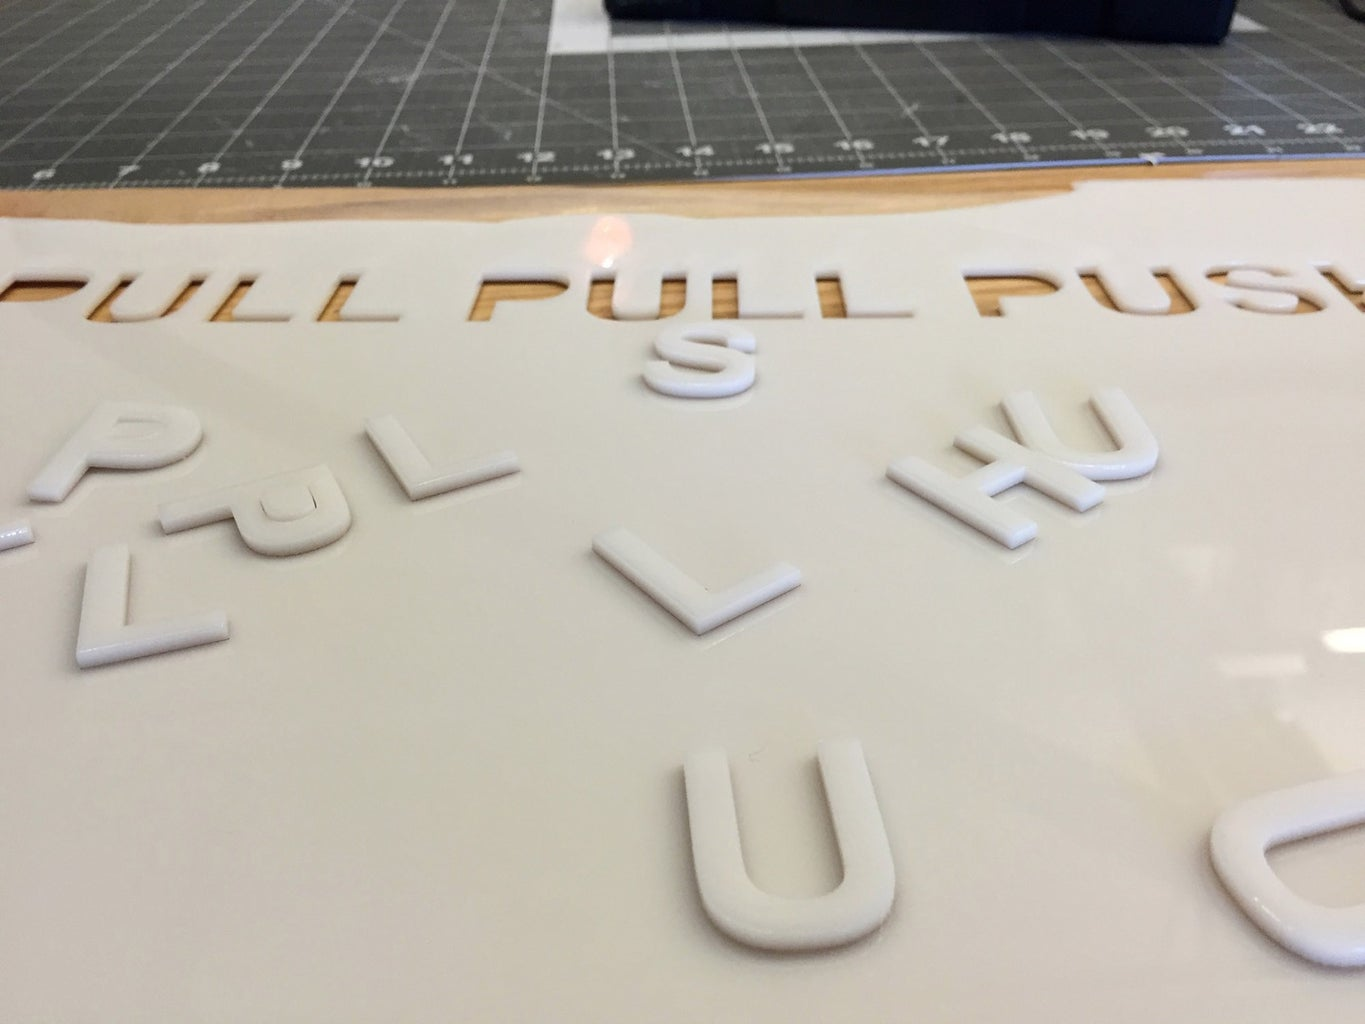 Attempt #1 - Laser Cutting and 3D Print With Fortus 450